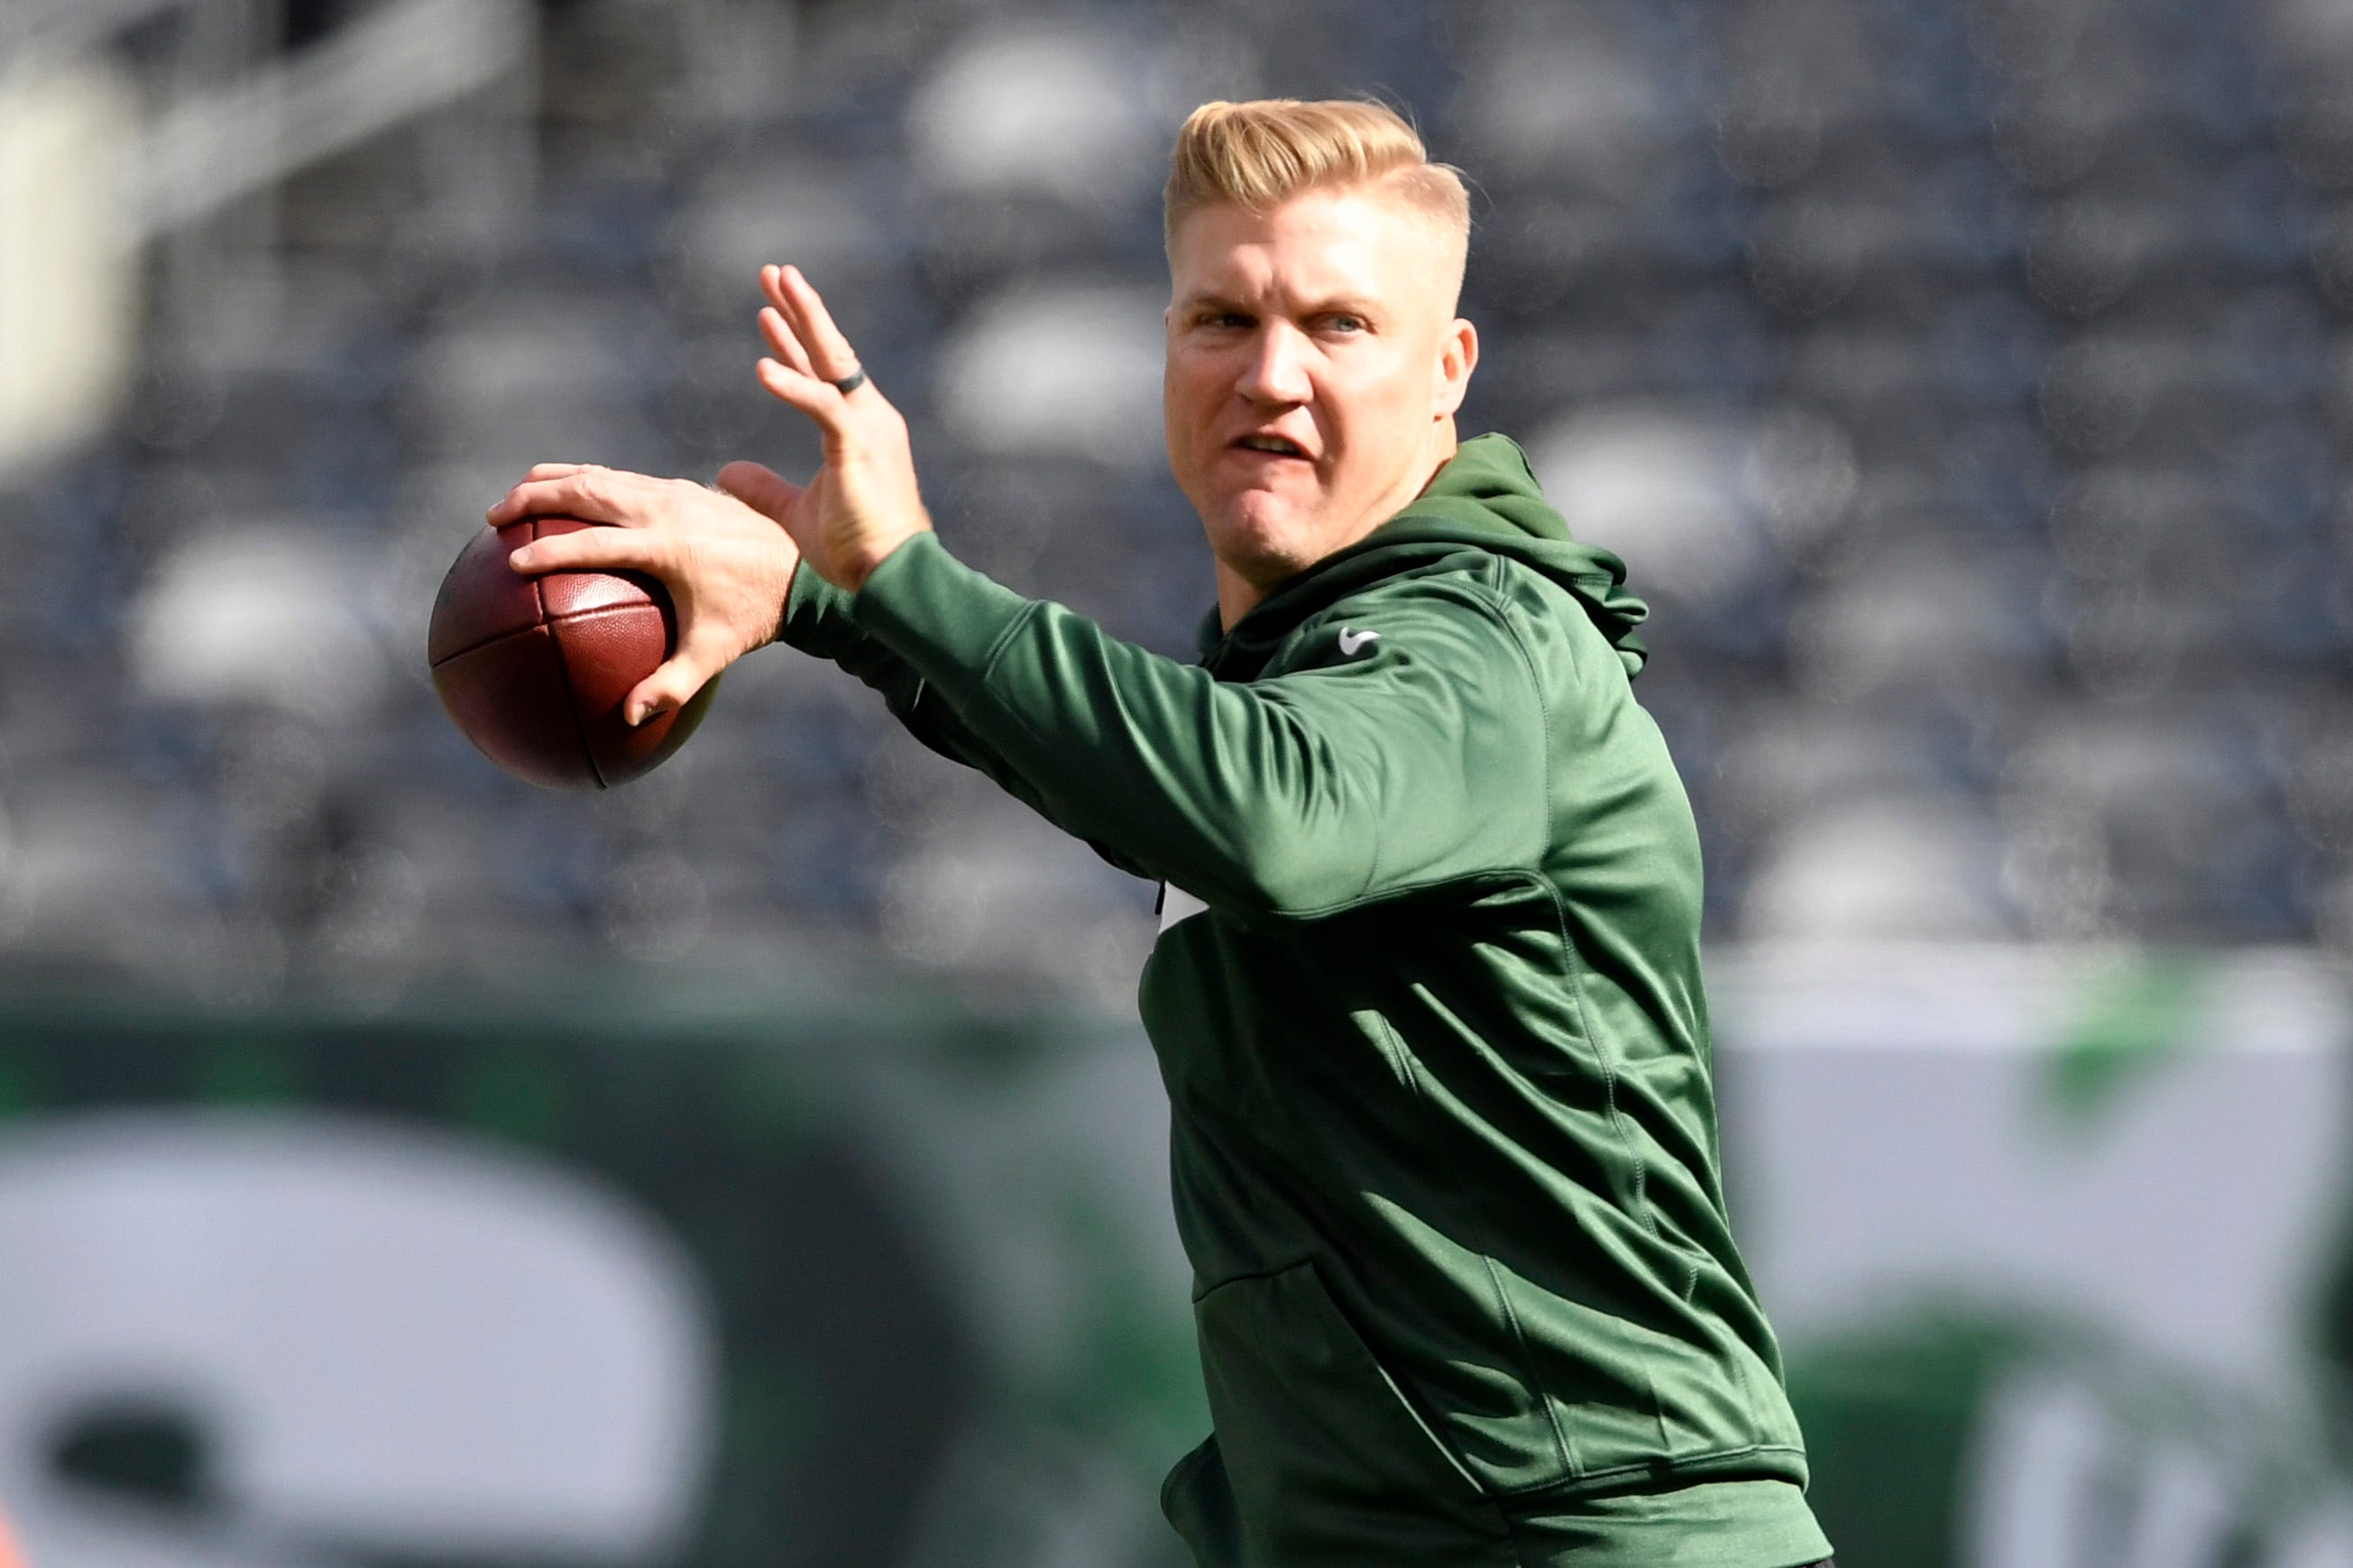 QB Josh McCown, 40, wasn't looking to come out of retirement. But then the Eagles called